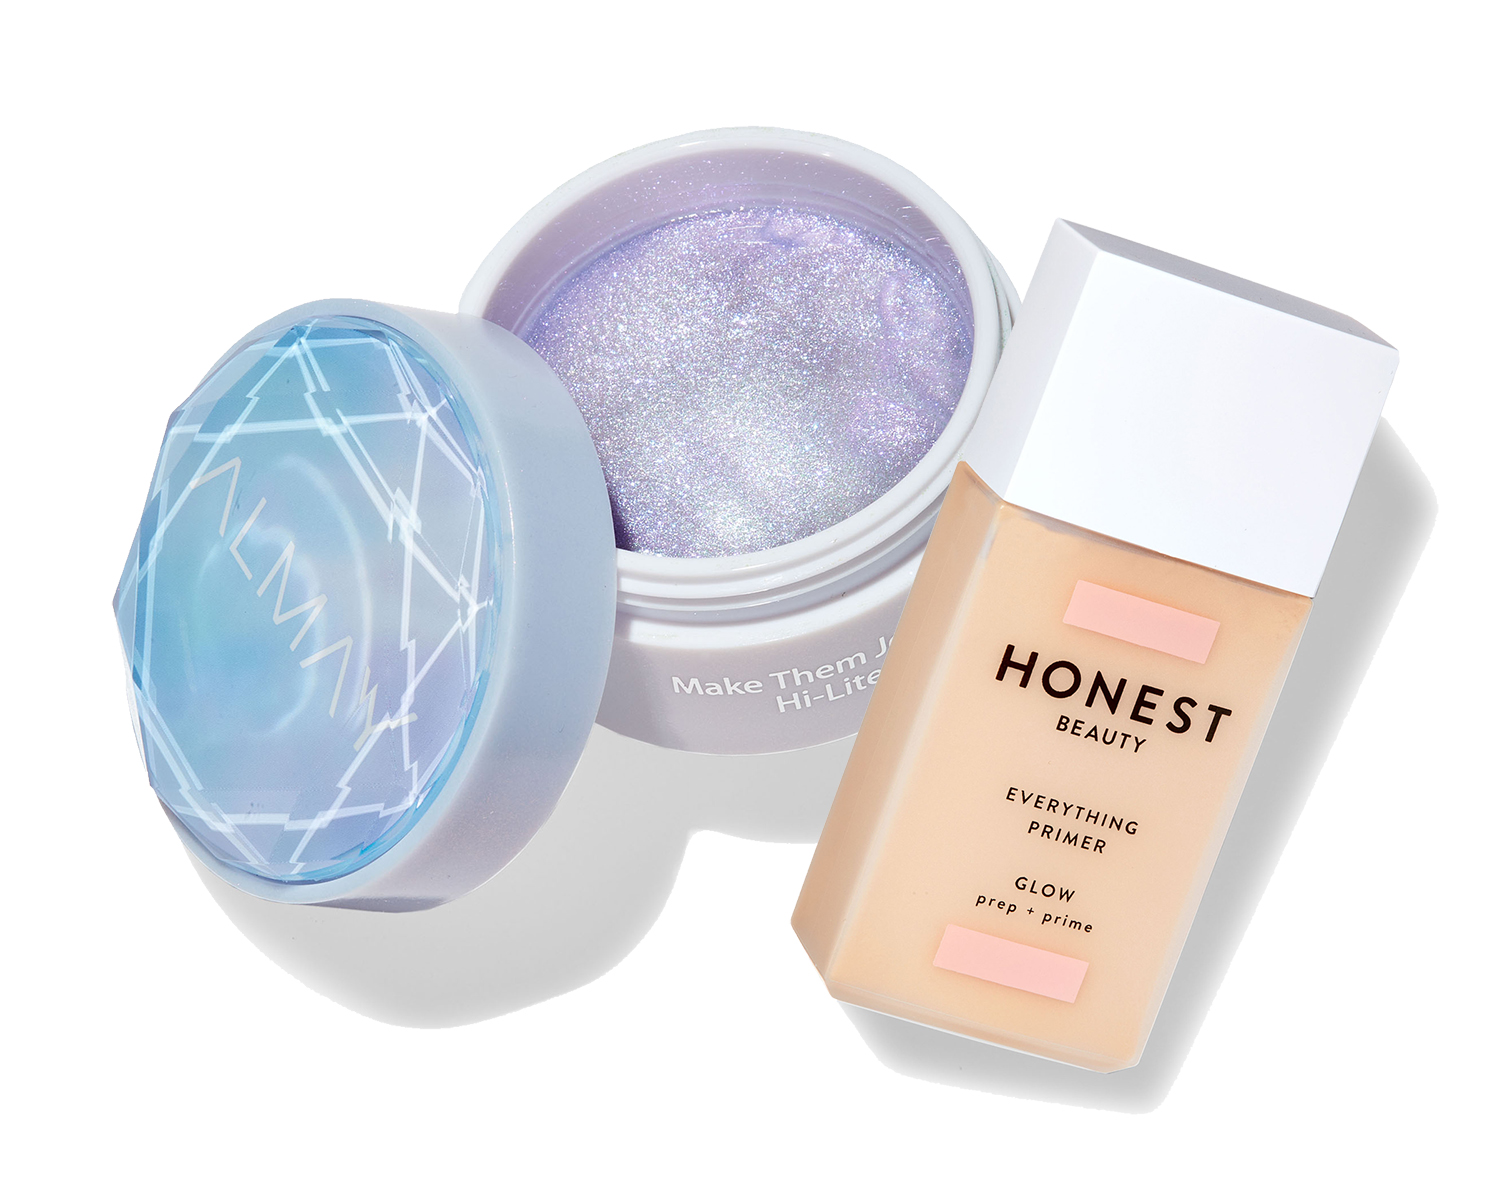 honest beauty everything primer glow and almay make them jelly hi lite in mermaid magic